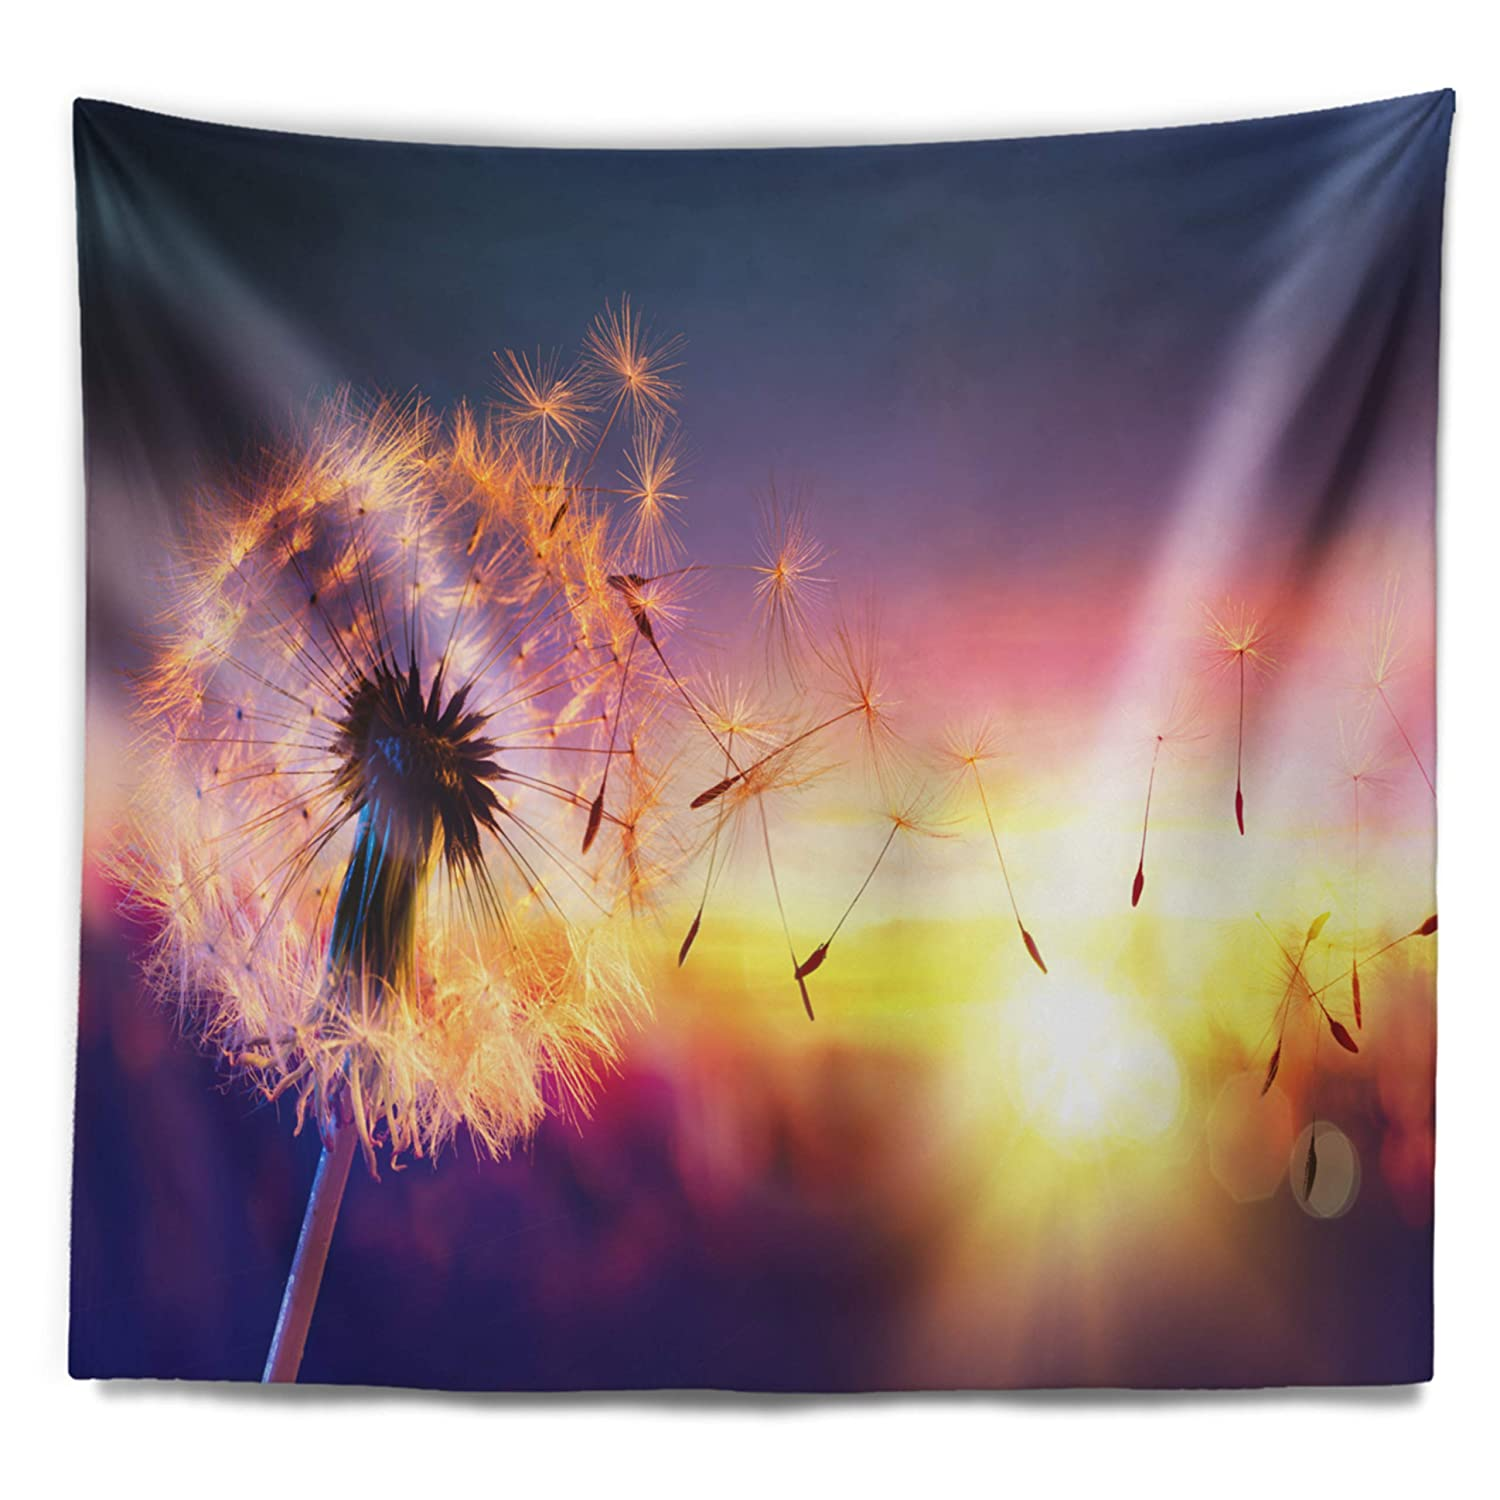 Designart TAP16445-60-50  Dandelion at Sunset Freedom to Wish Abstract Blanket D/écor Art for Home and Office Wall Tapestry Large x 50 in Created On Lightweight Polyester Fabric 60 in